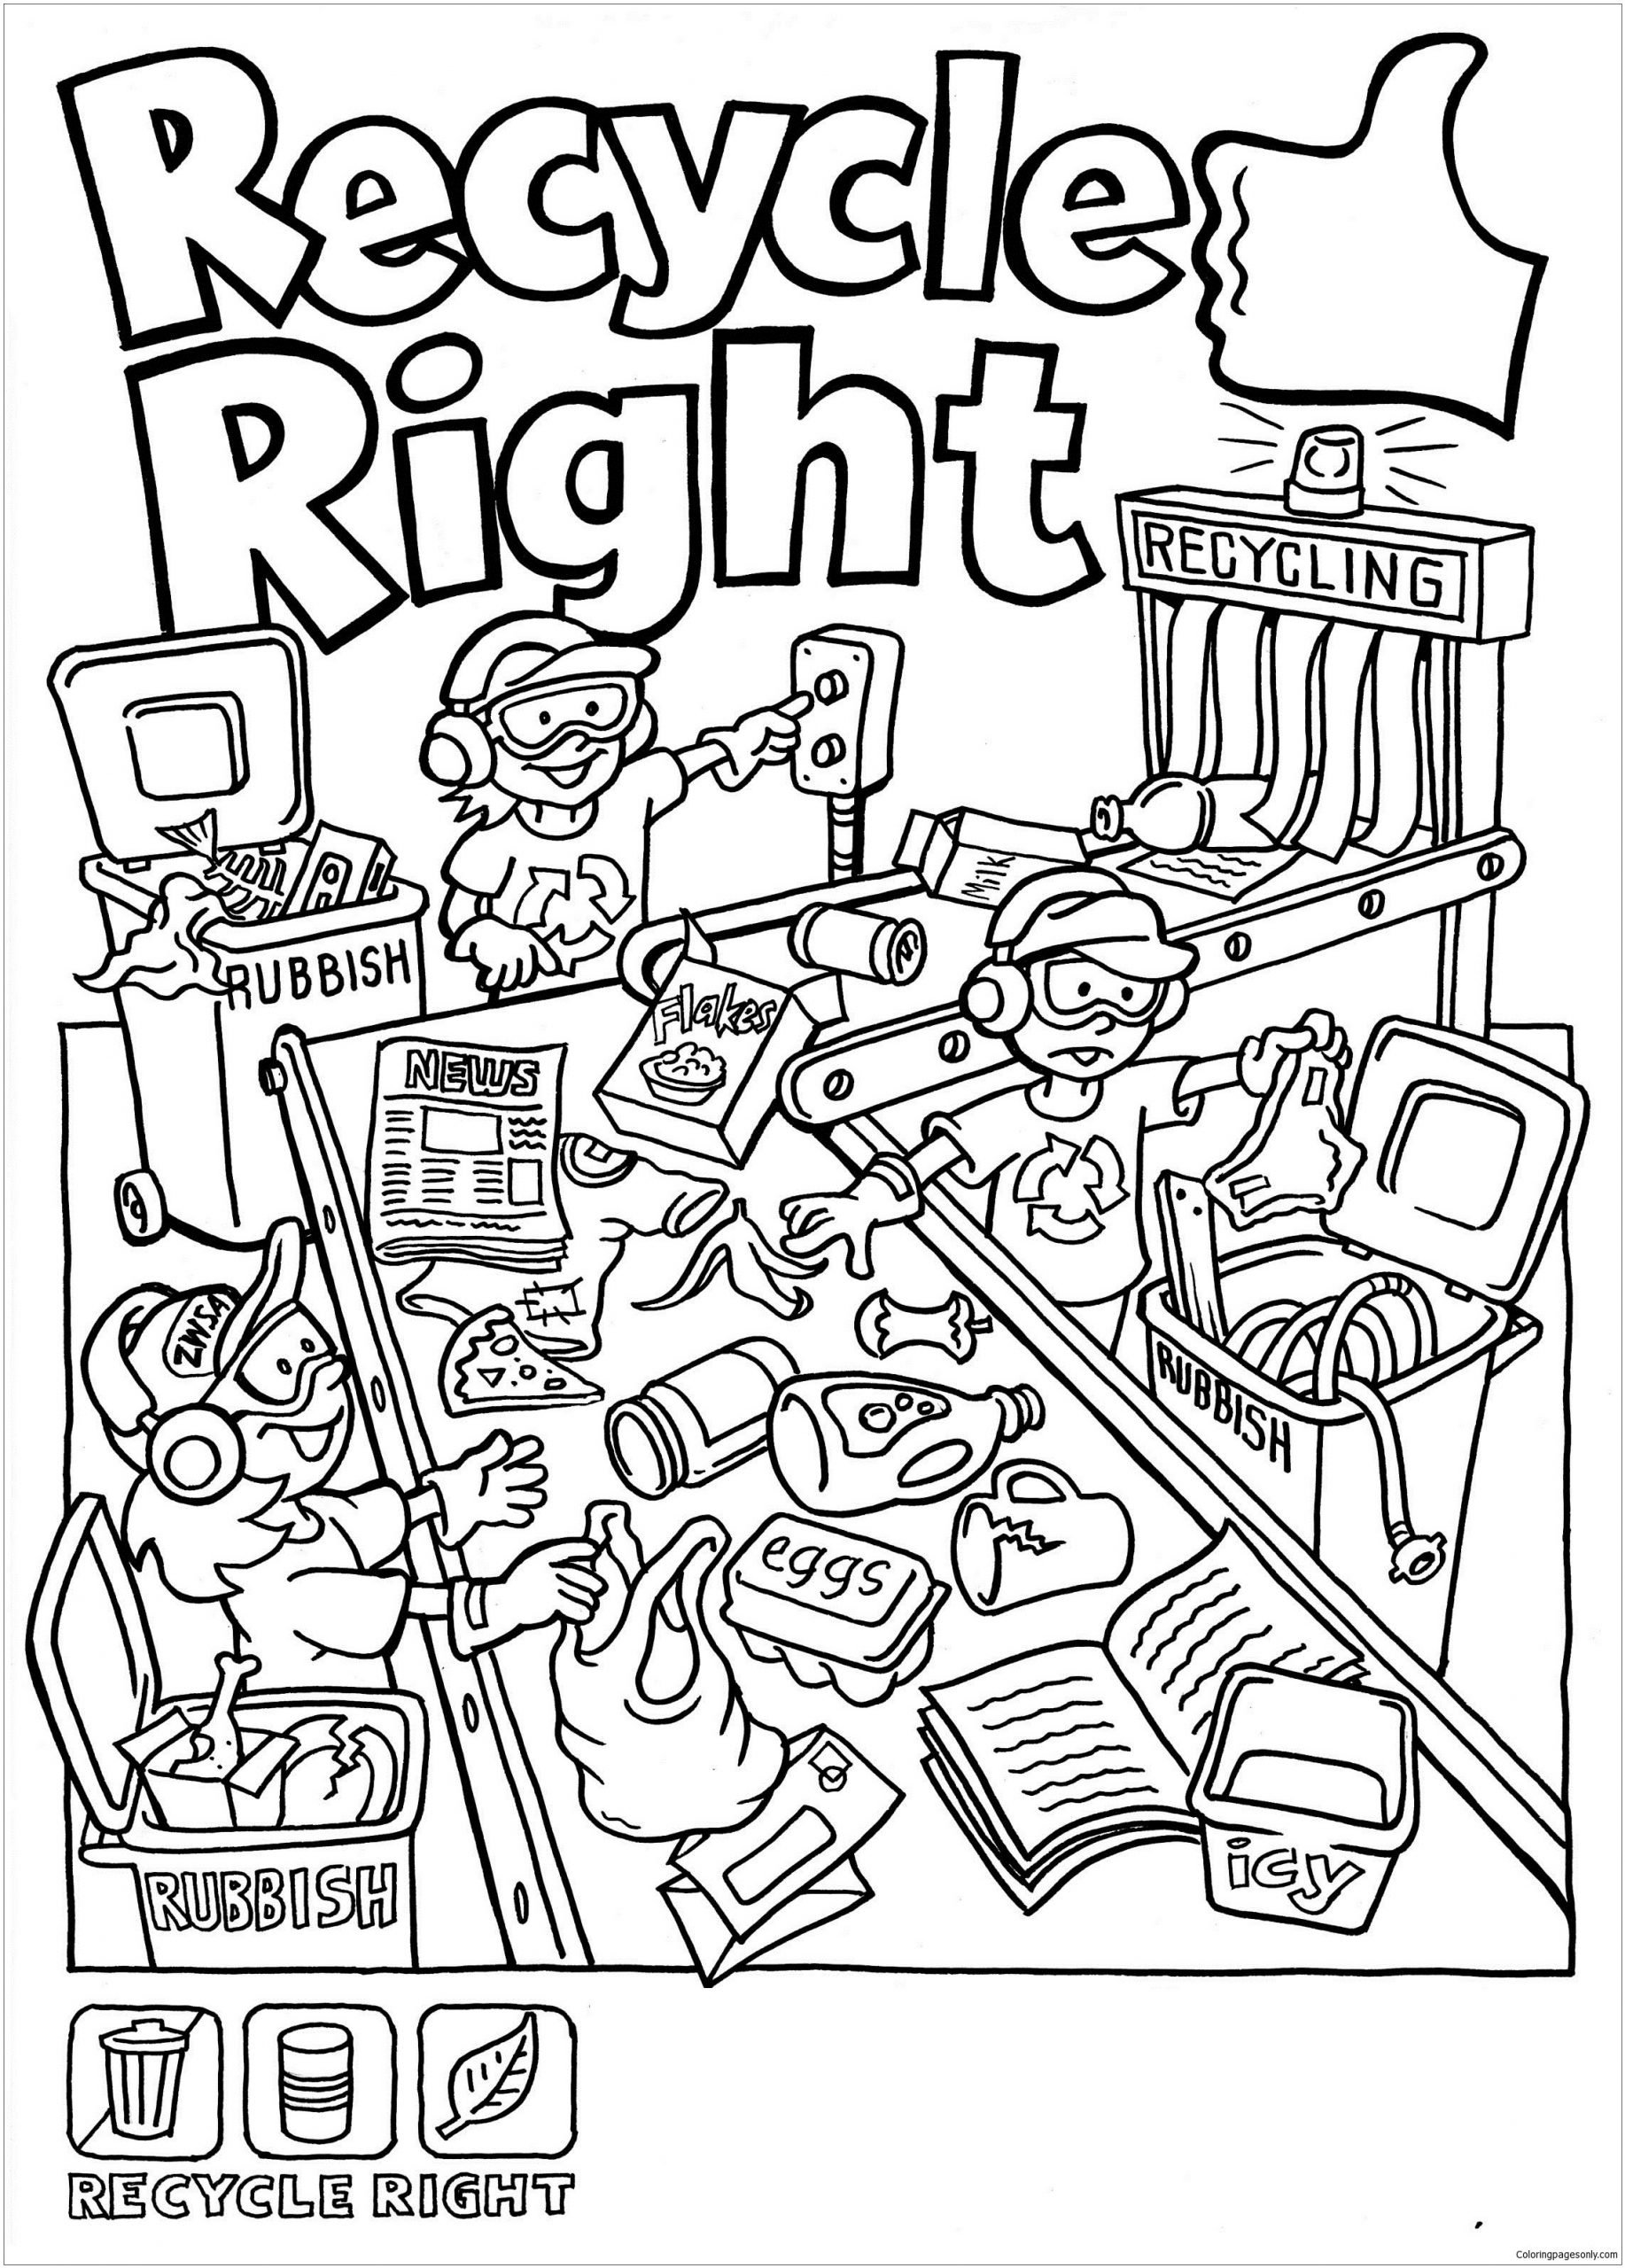 Free Recycling Worksheets Recycle Right Coloring Page Free Coloring Pages Line